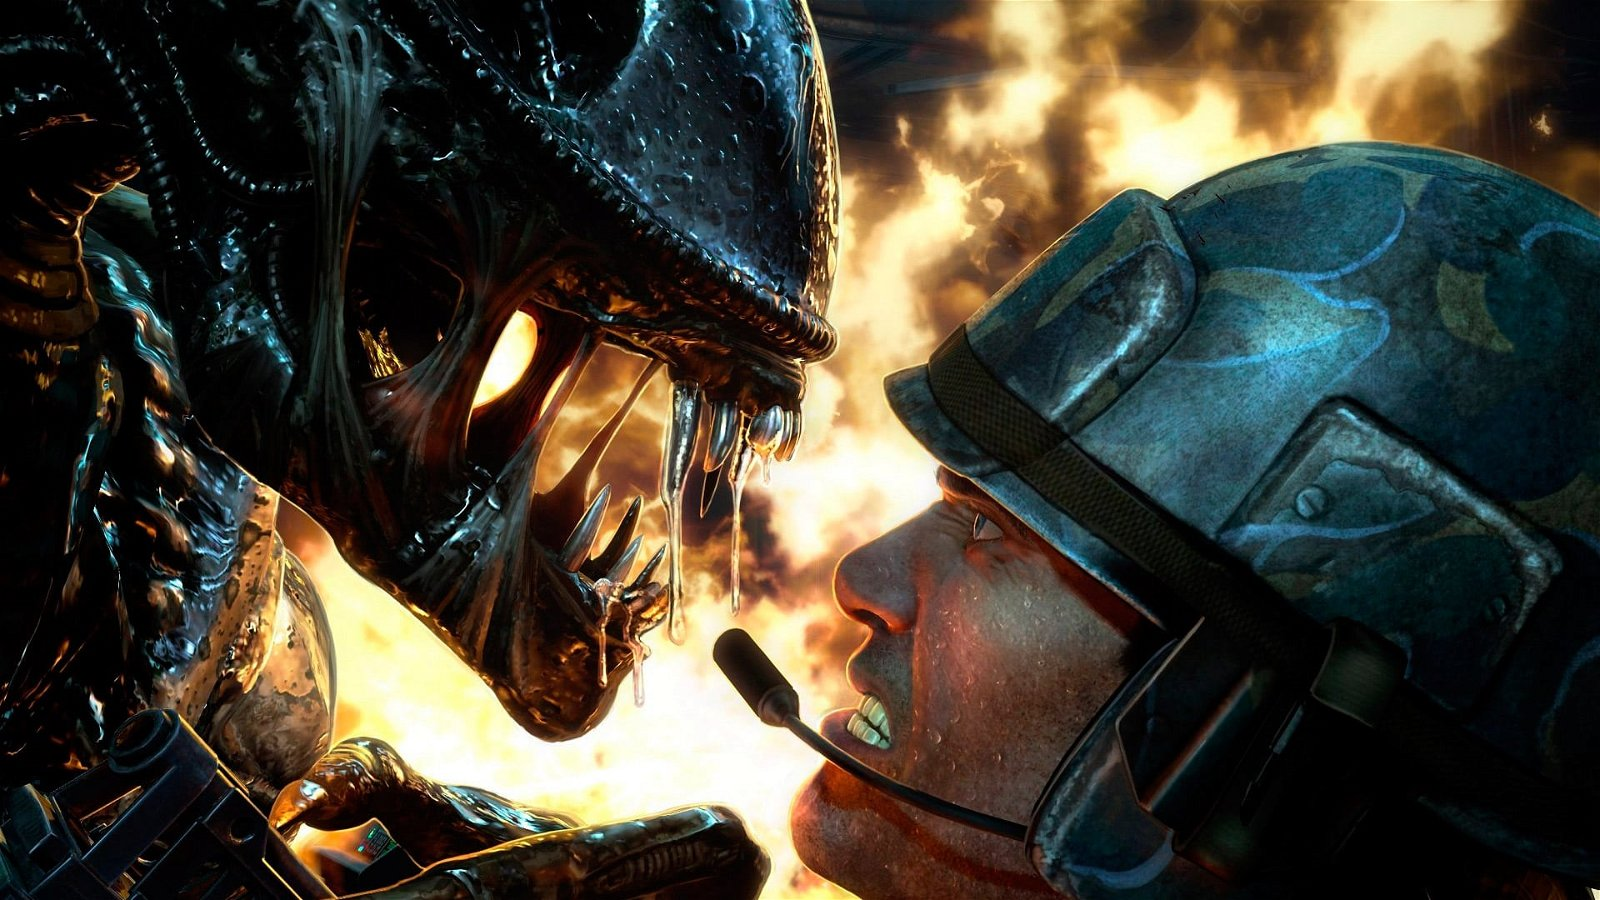 Vice President of 3D Realms revealed a Co-Op Aliens game Was in Development Before Disney/Fox merger. 1